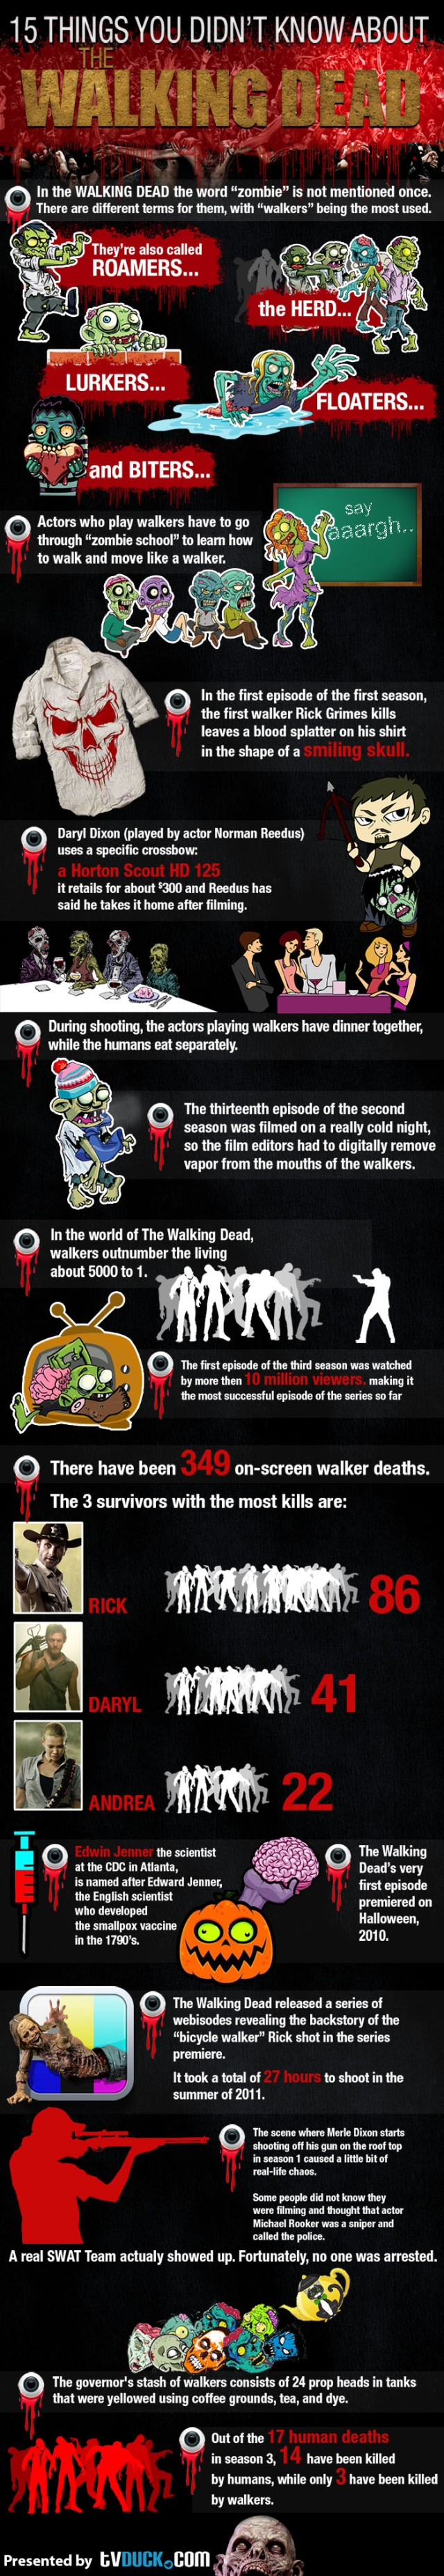 15 Facts on The Walking Dead